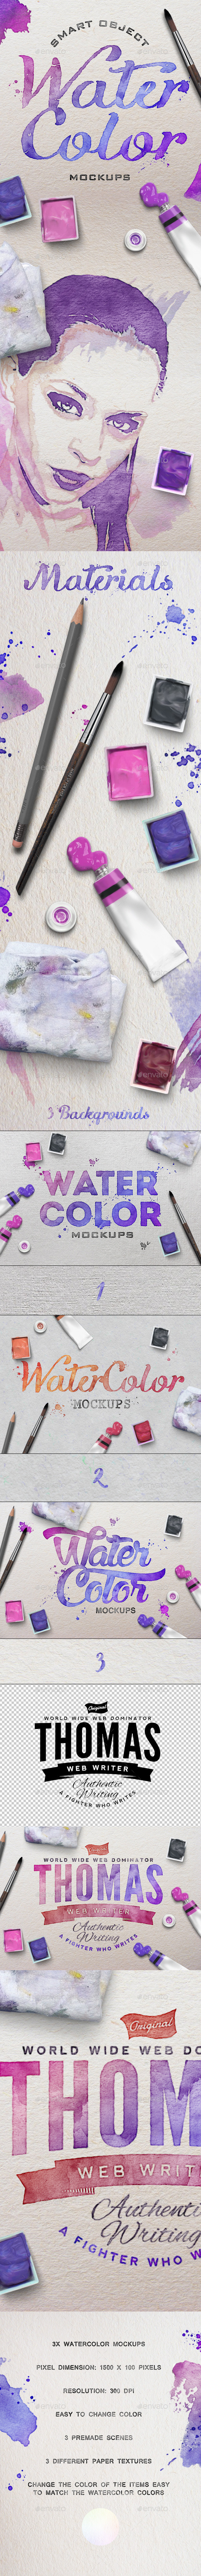 Watercolor Scene Mockups - Hero Images Graphics